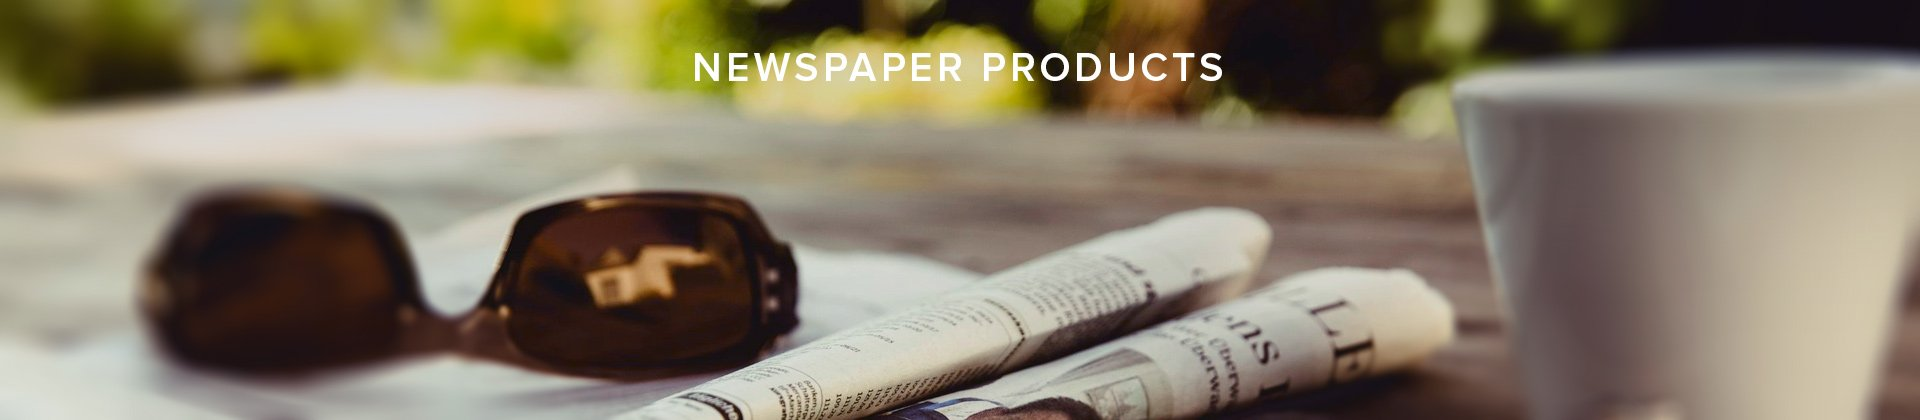 Newspaper Product Banner